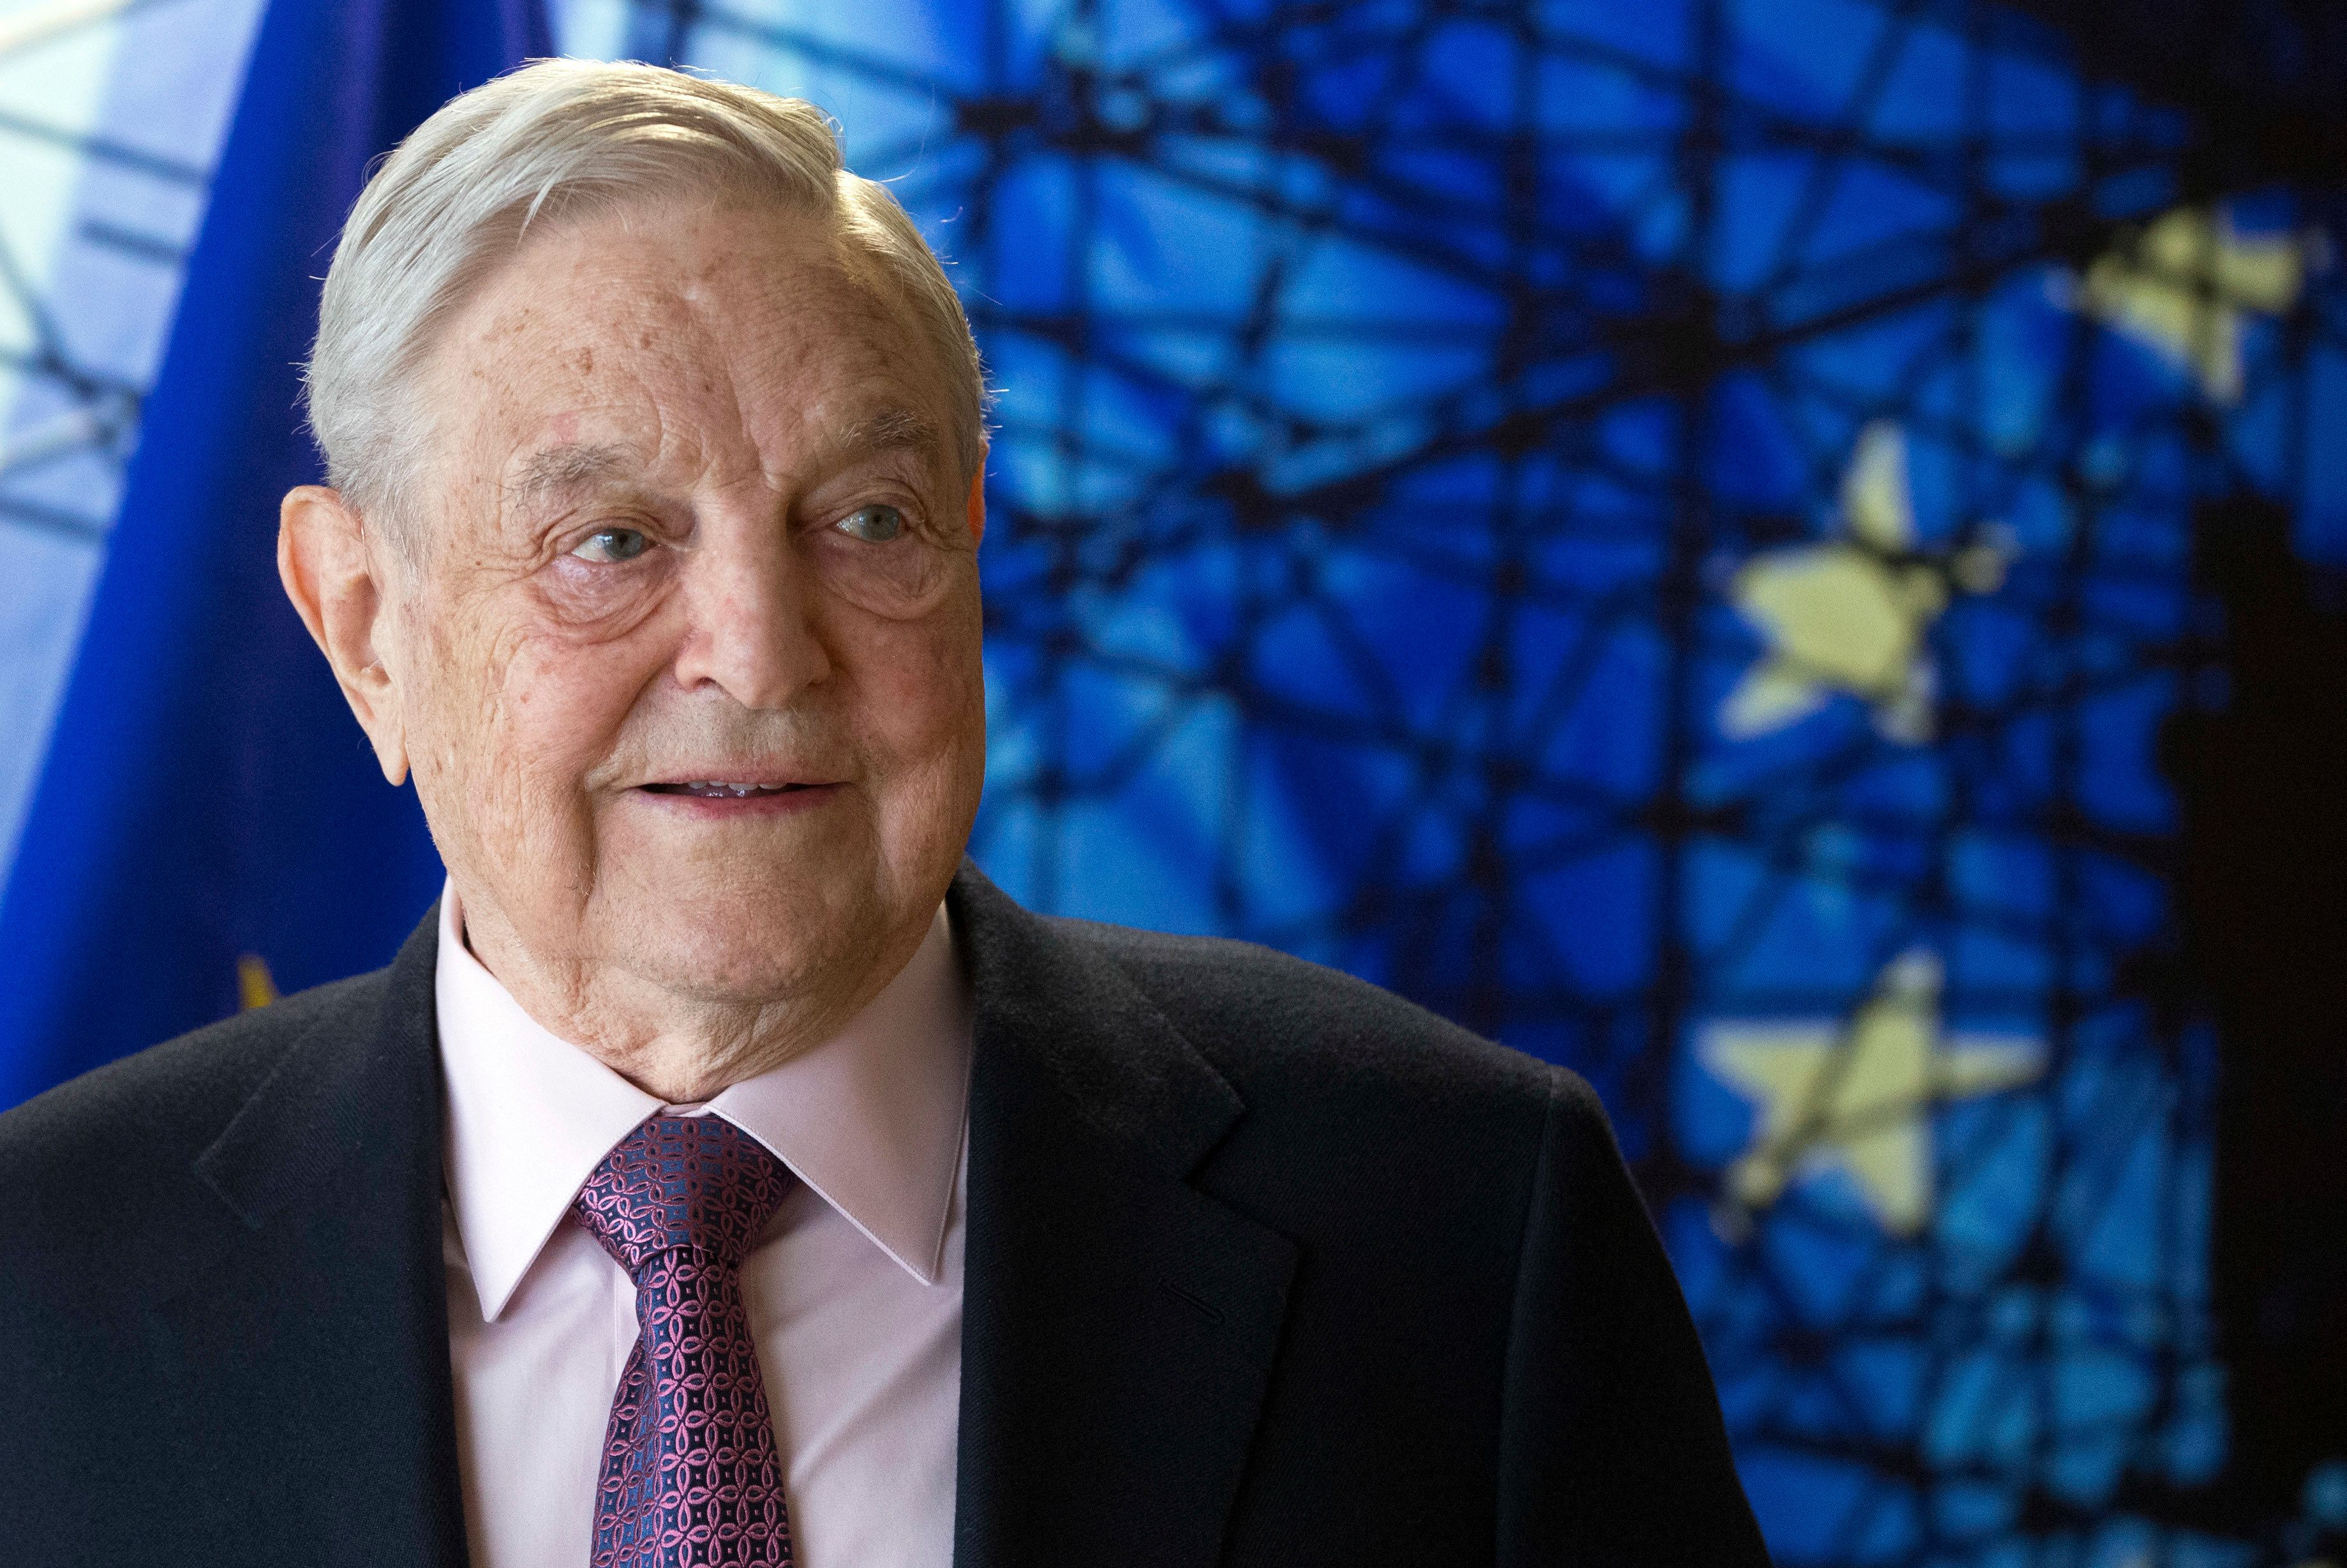 George Soros-Backed University Says It's Been 'Forced Out' Of